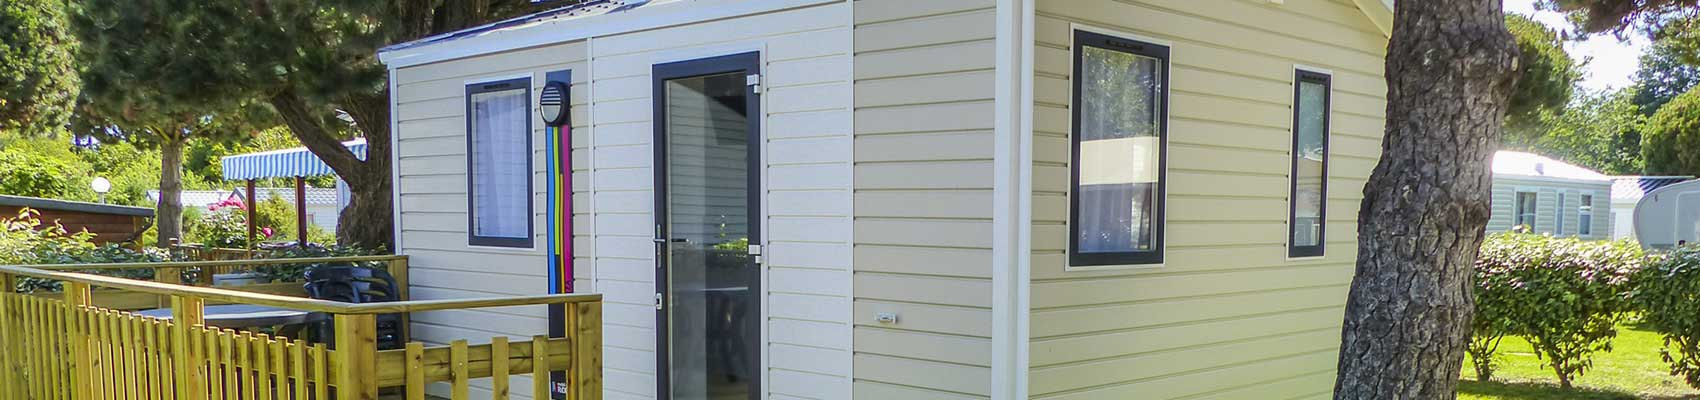 location mobil-home vacances camping bretagne